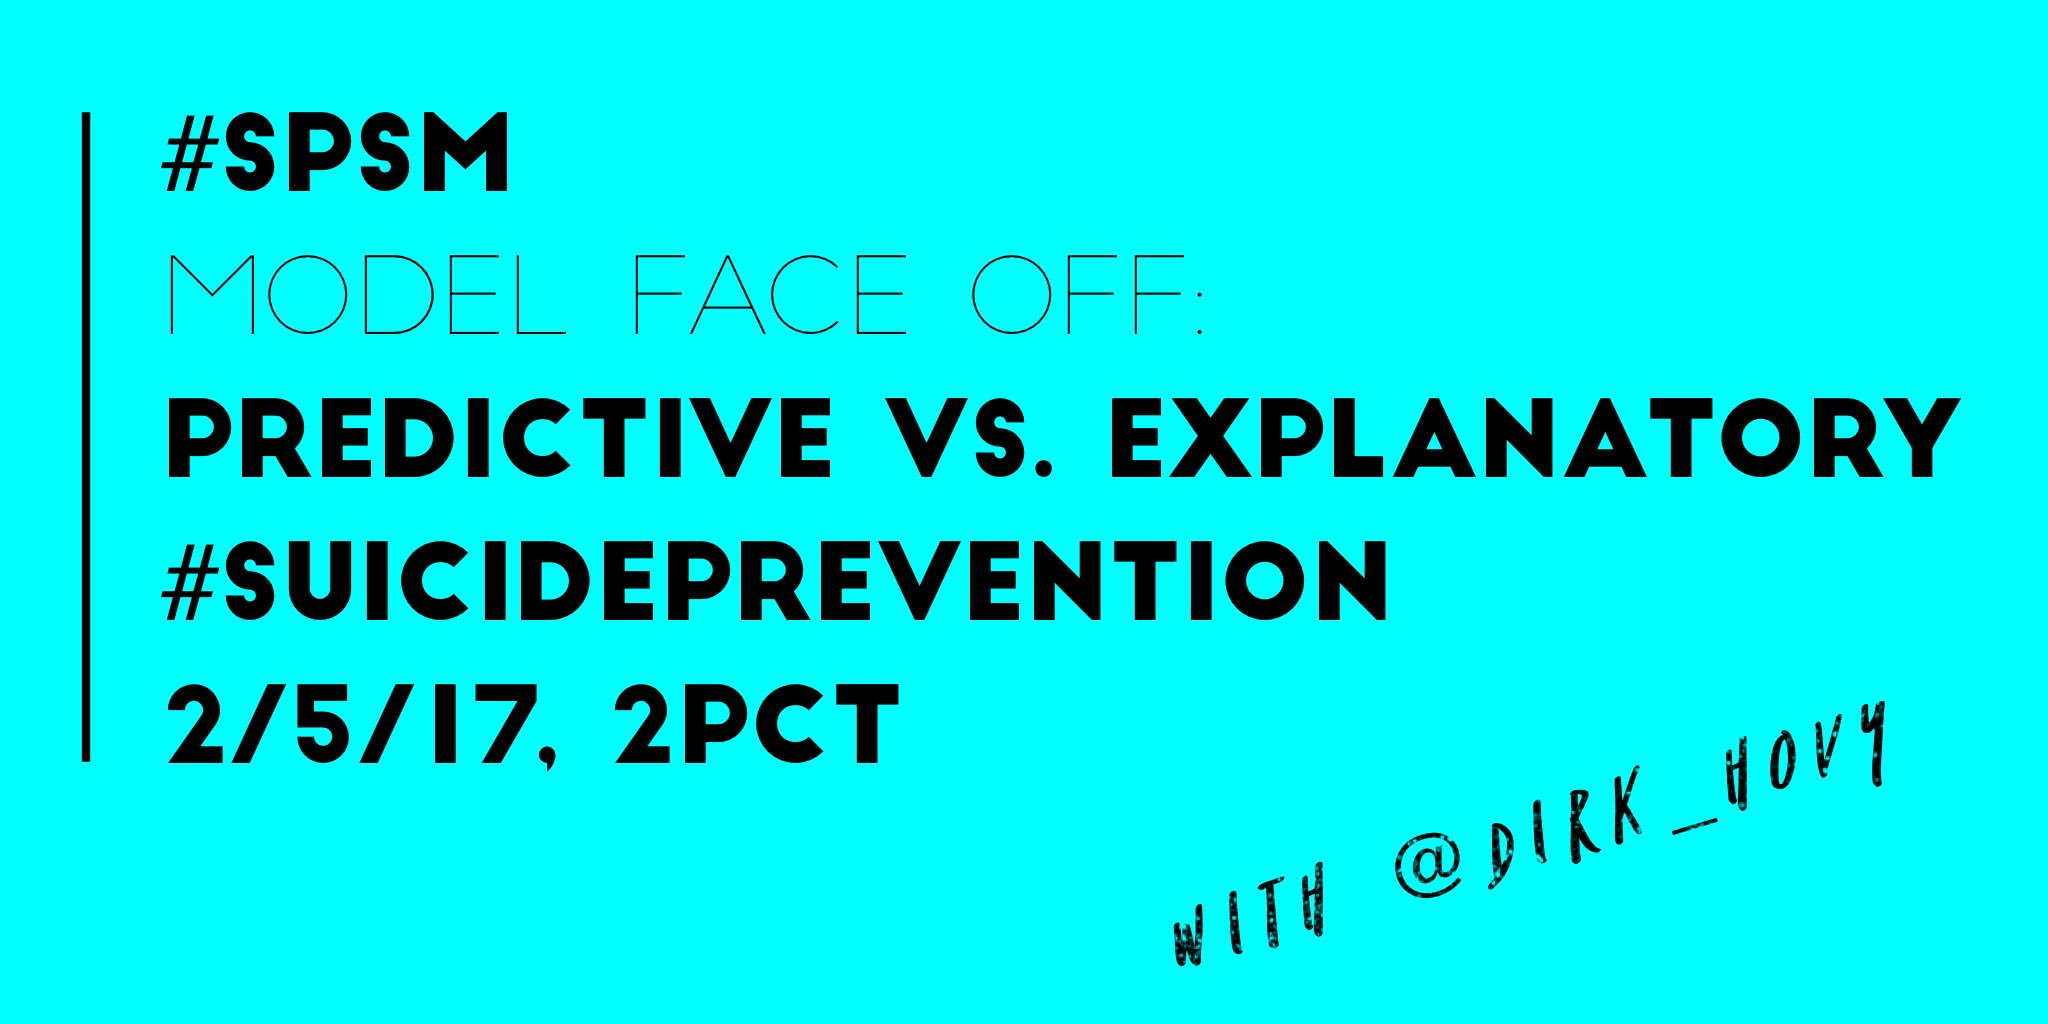 Thumbnail for @Dirk_Hovy chats with #SPSM about #predictive and #explanatory models in #suicide research, 2/5/17.